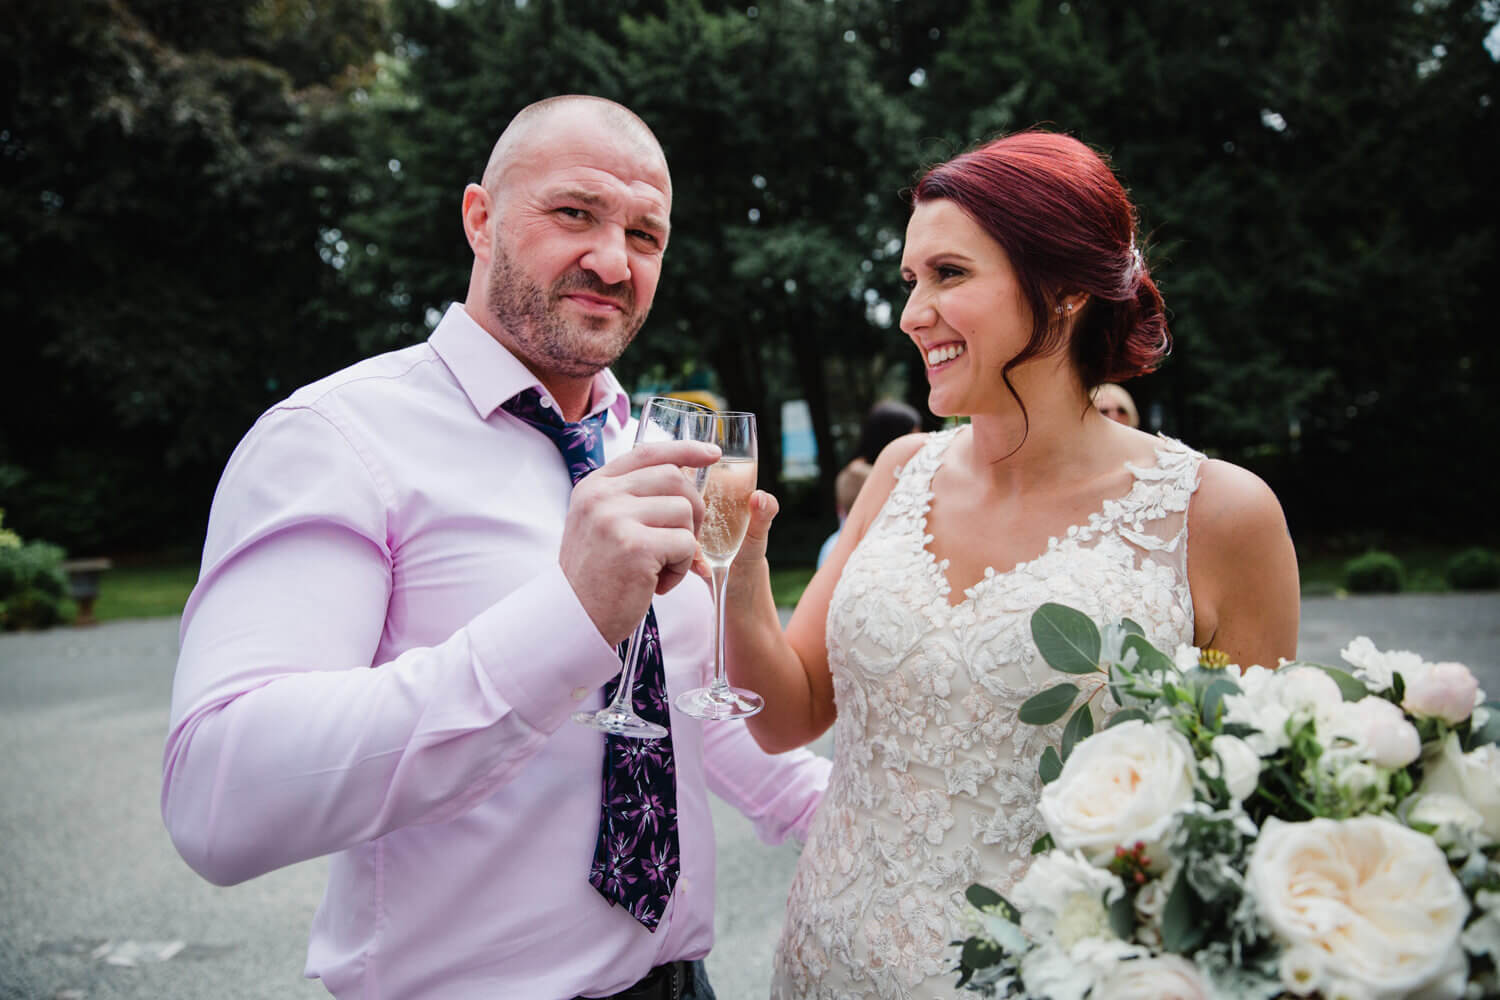 newlyweds clink champagne glasses in celebration of marriage